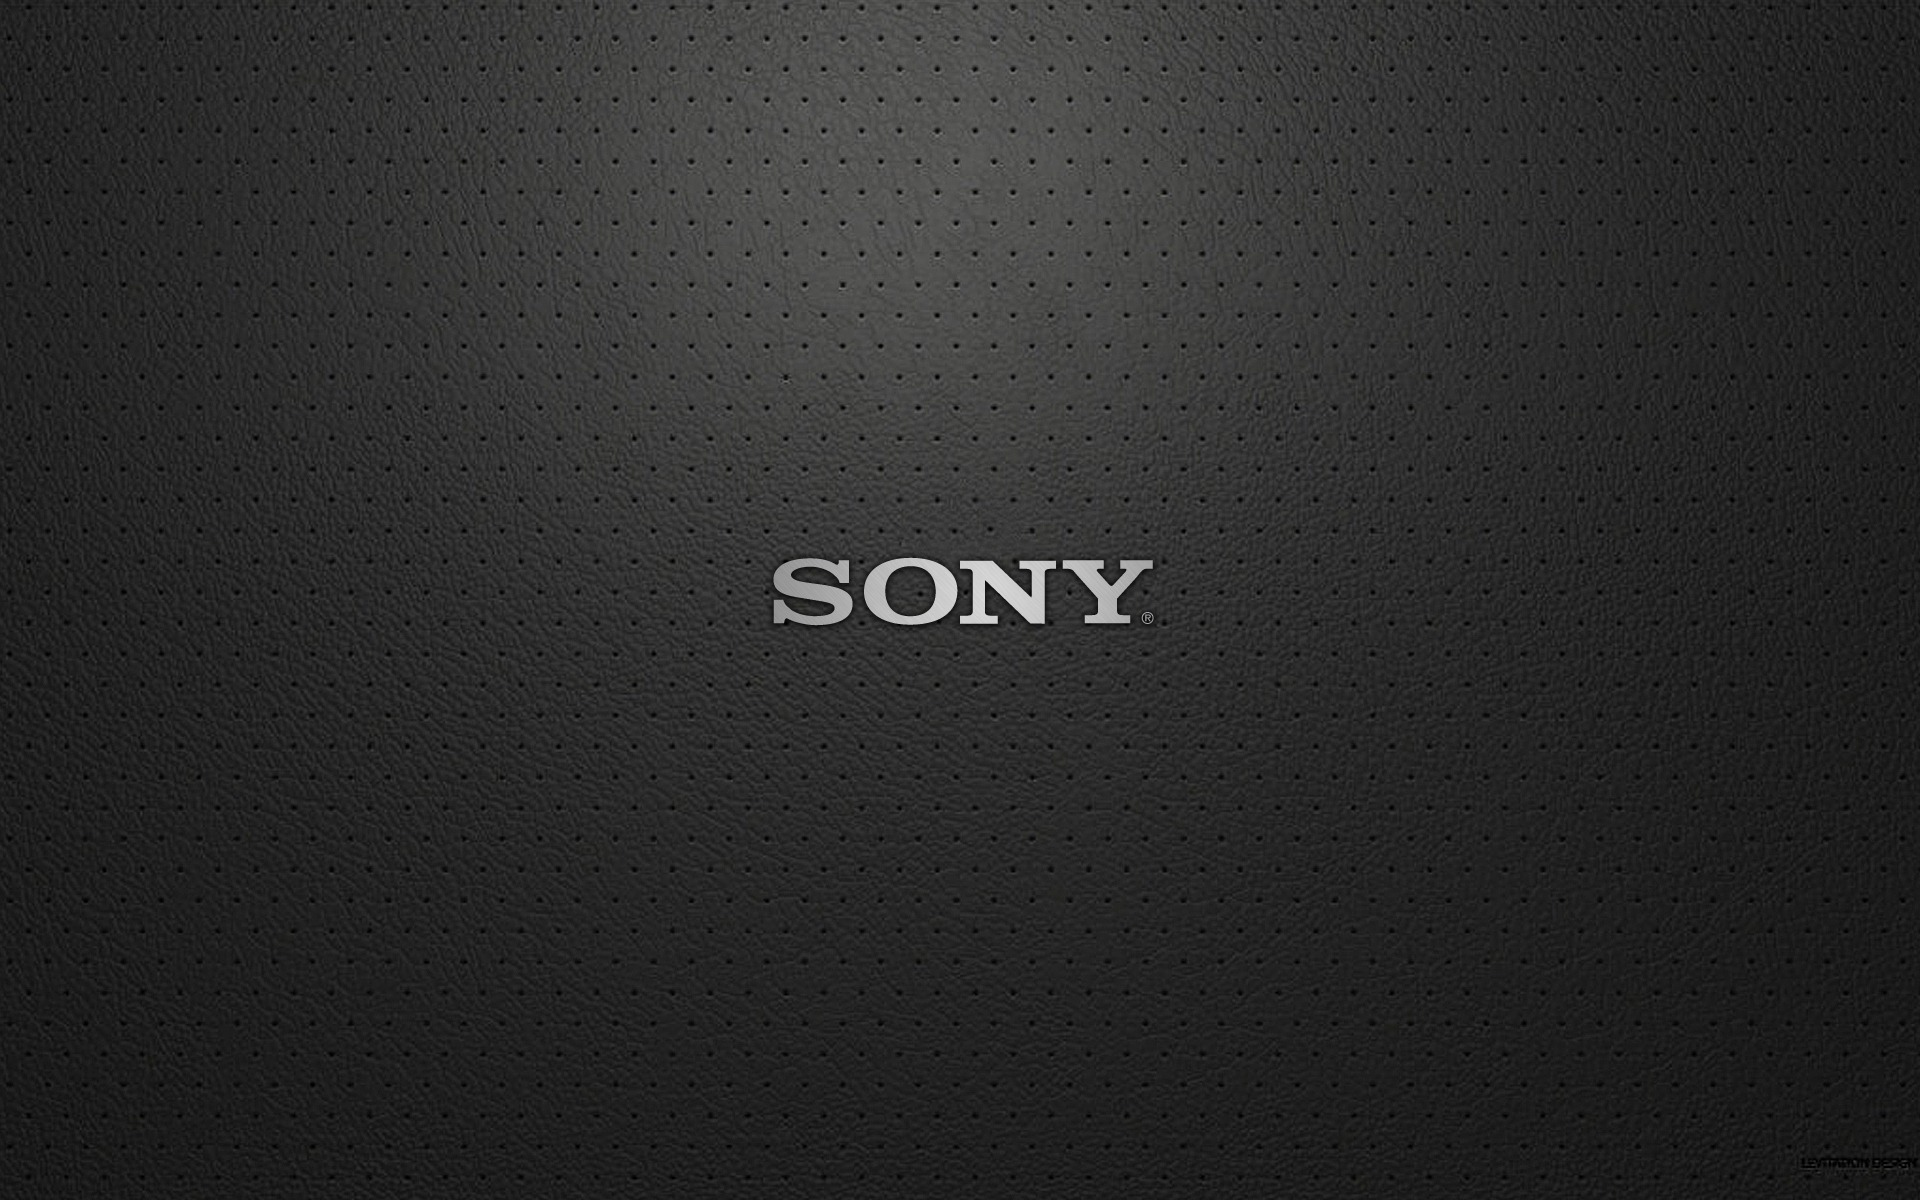 Amazing Sony Wallpaper